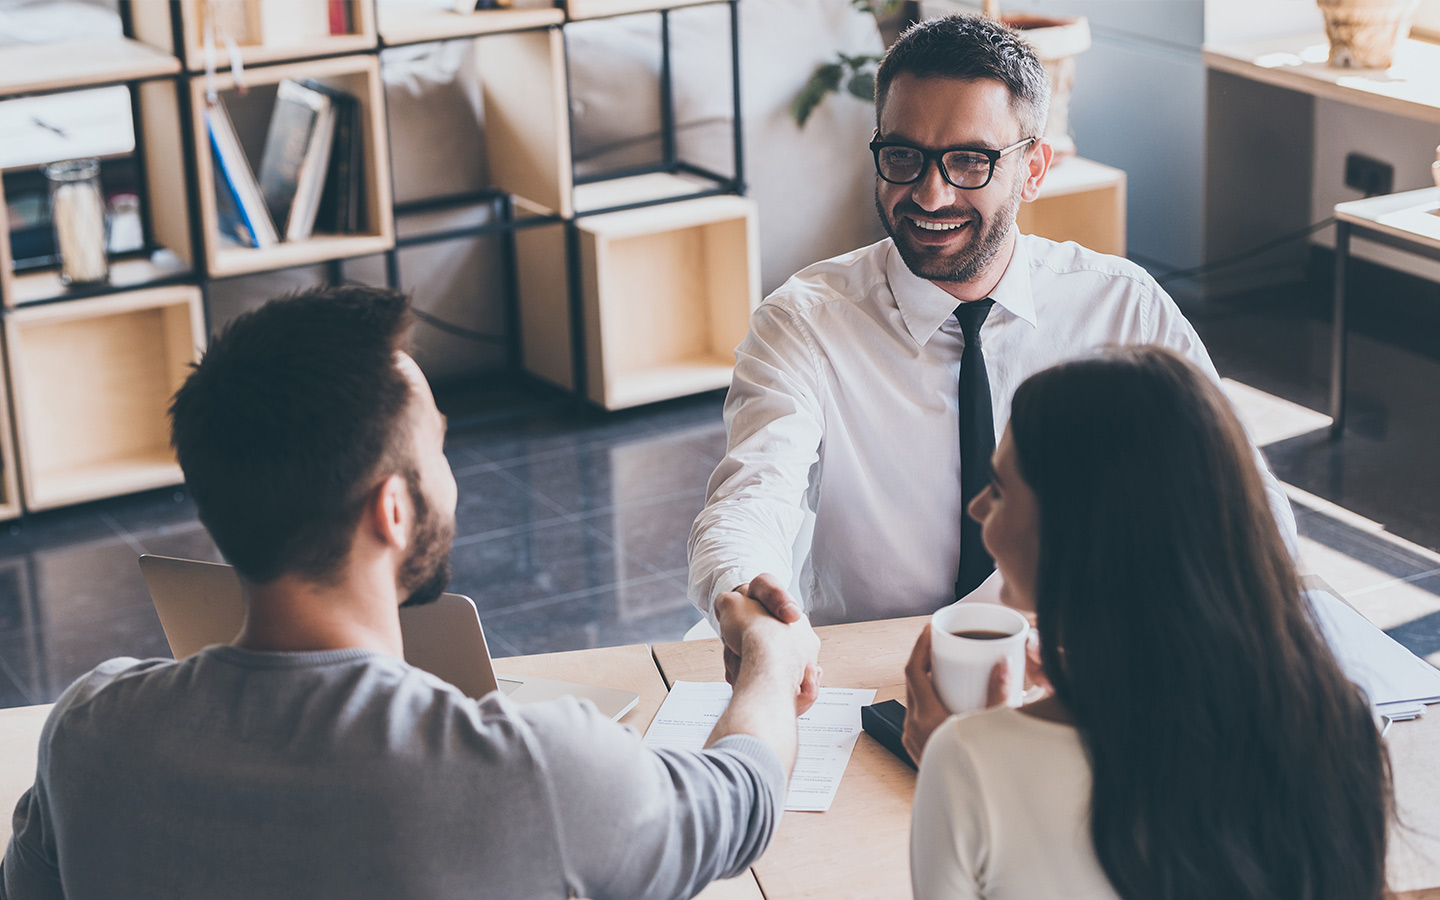 Problem solving is an essential skill to become a top real estate agent